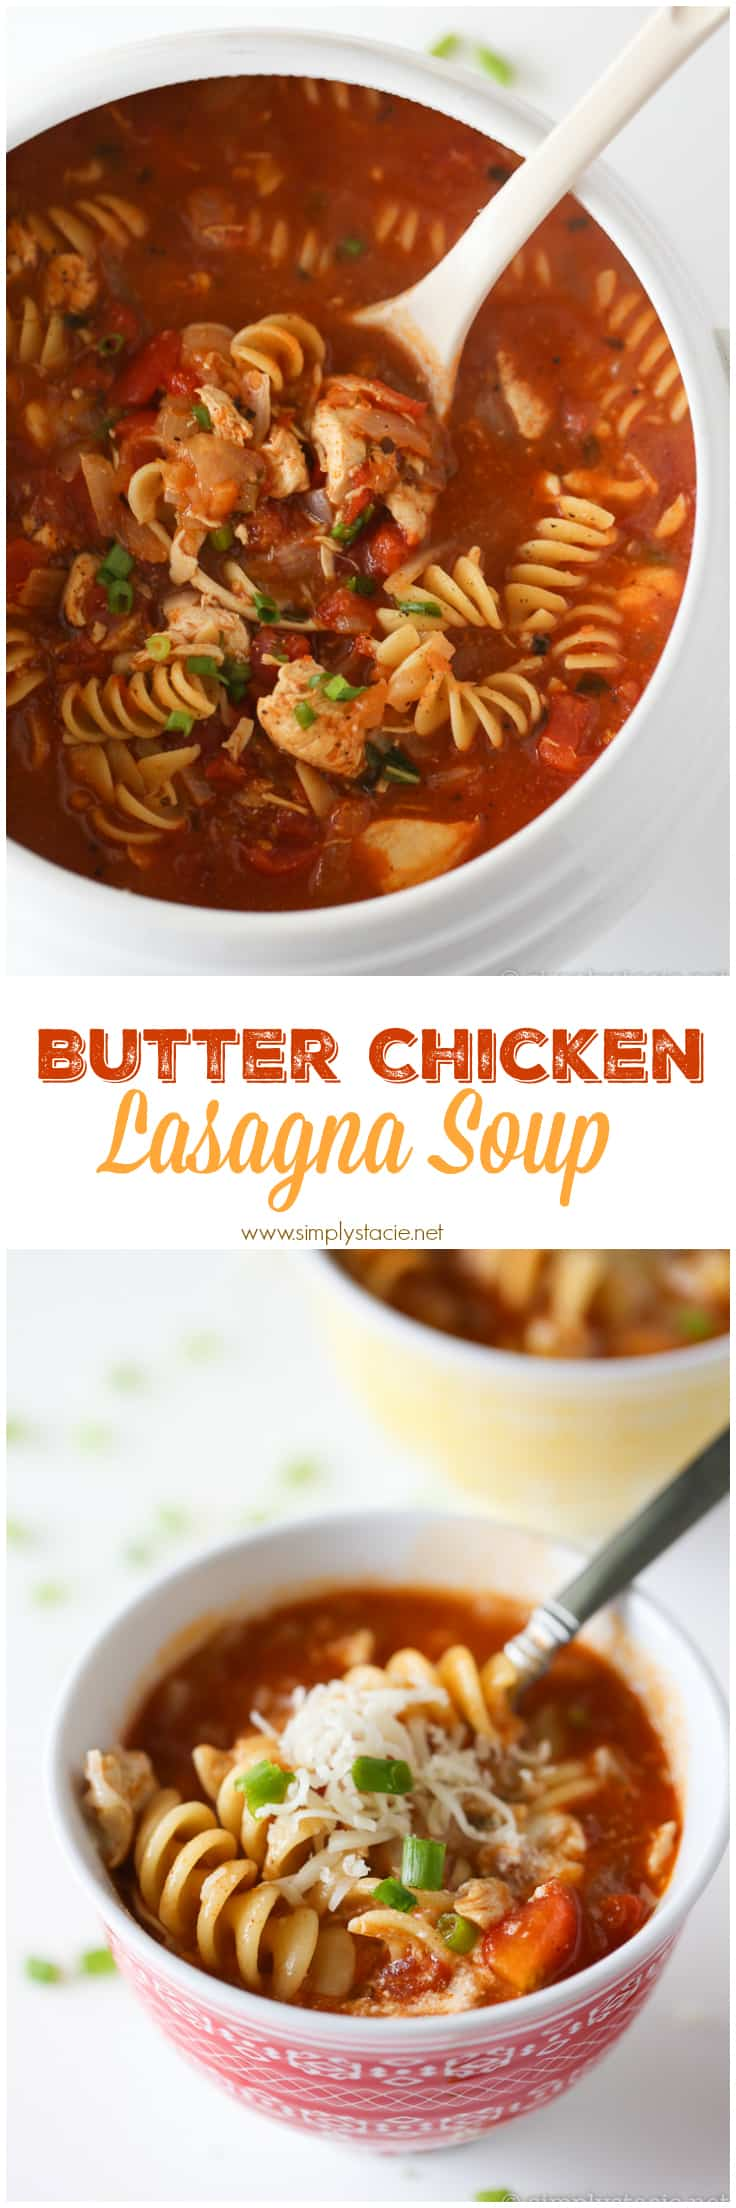 Butter Chicken Lasagna Soup - The best fusion comfort food! Add a little taste of India to this Italian-inspired soup with zesty butter chicken sauce with ricotta and mozzarella cheeses.